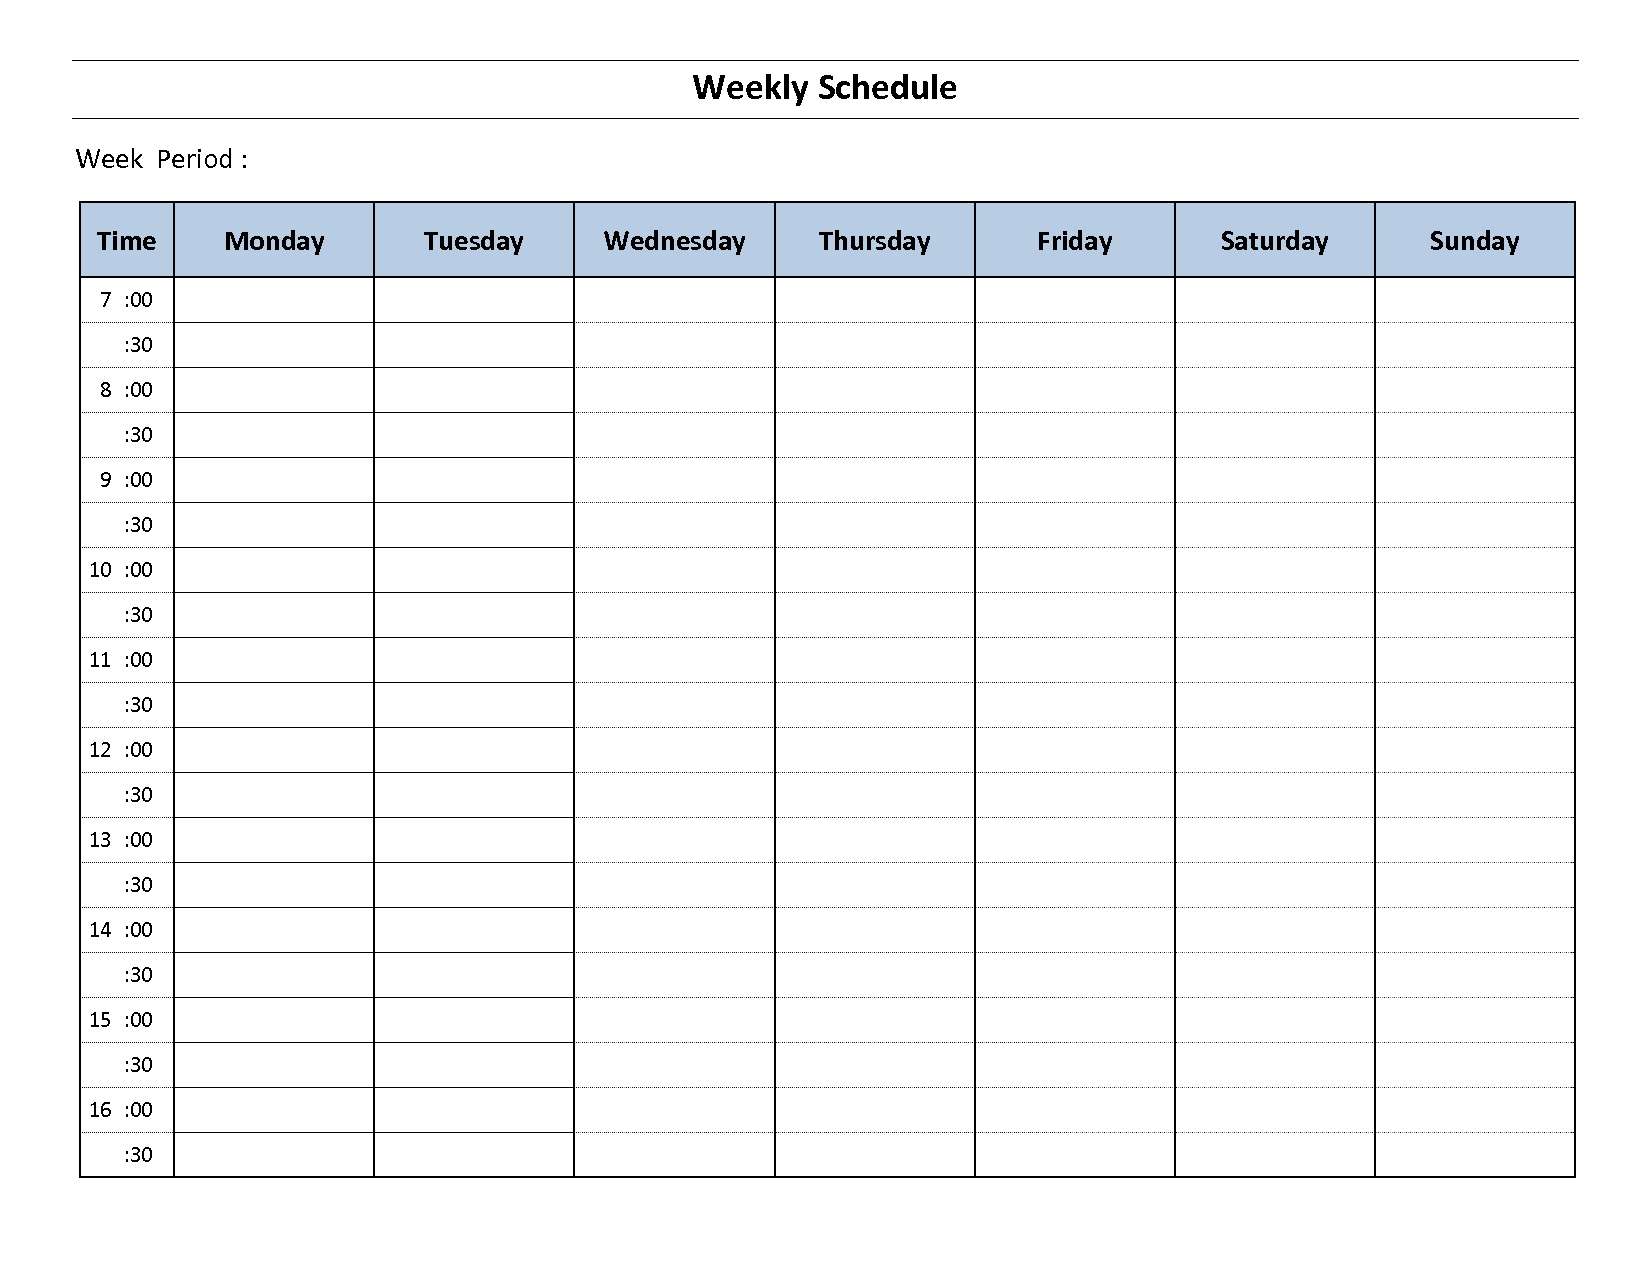 Weekly Calendar With Time Slots Template | Calendar Daily Calendar With Time Slots Imaga